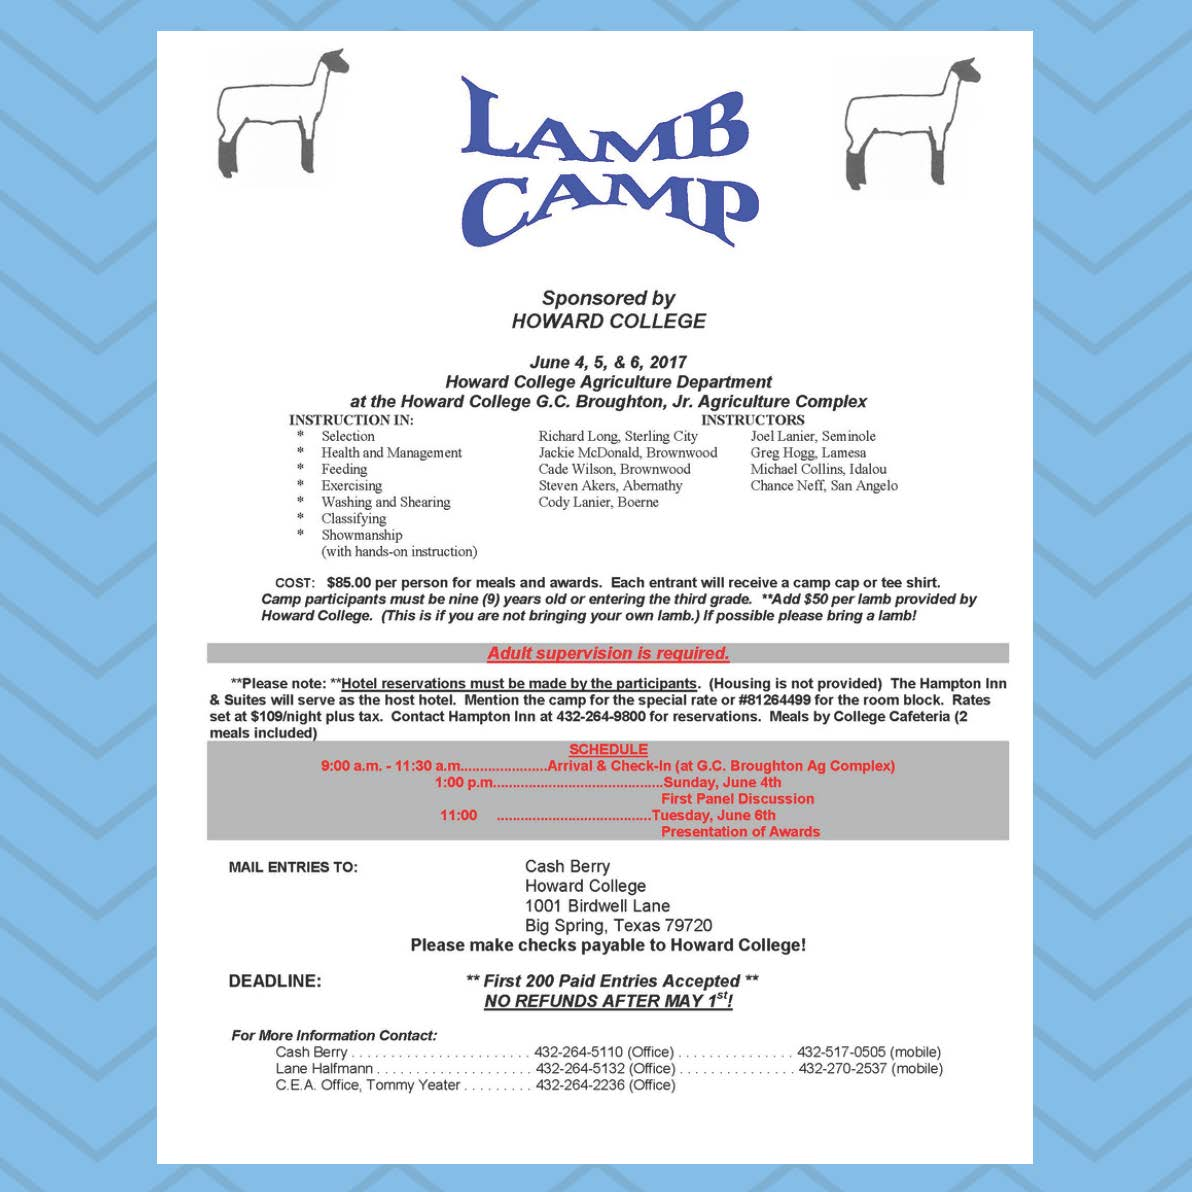 Howard Co_Lamb and Goat Camp_Page_1